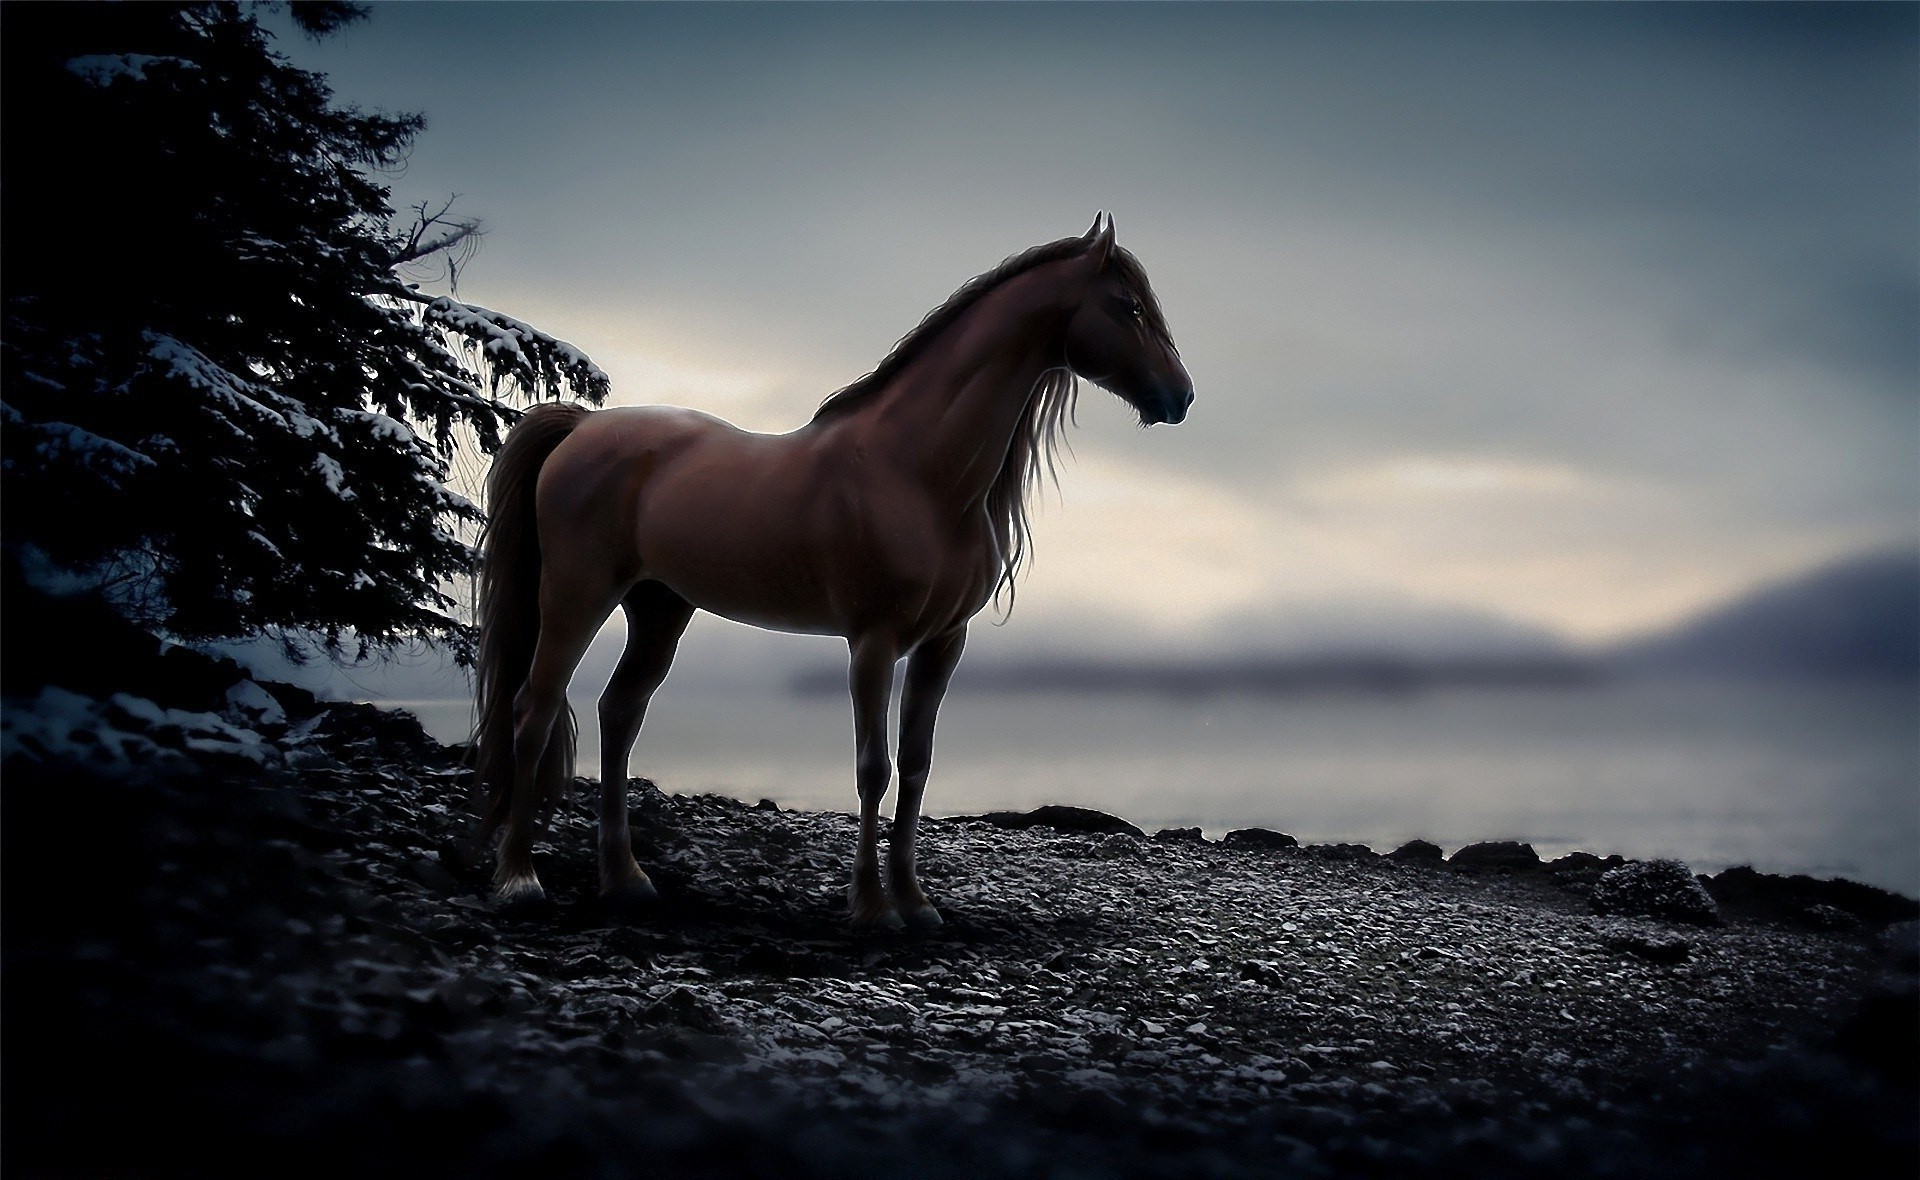 Graceful horse came to the shore of the lake